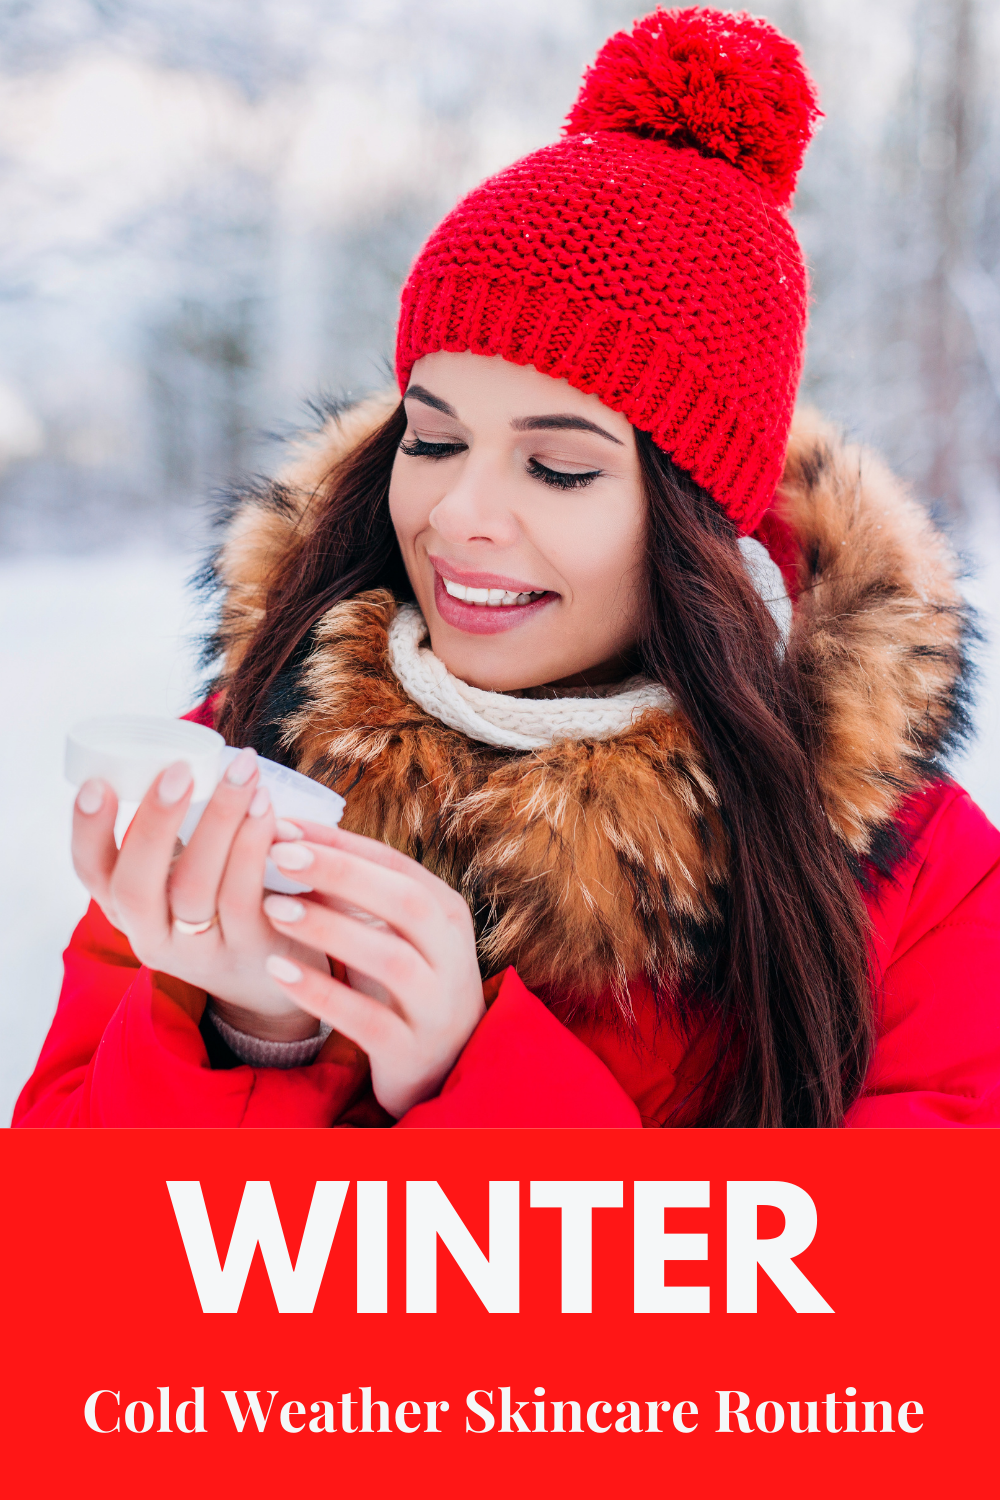 16 Fail-Proof Ways to Adjust Your Skin Care in Winter